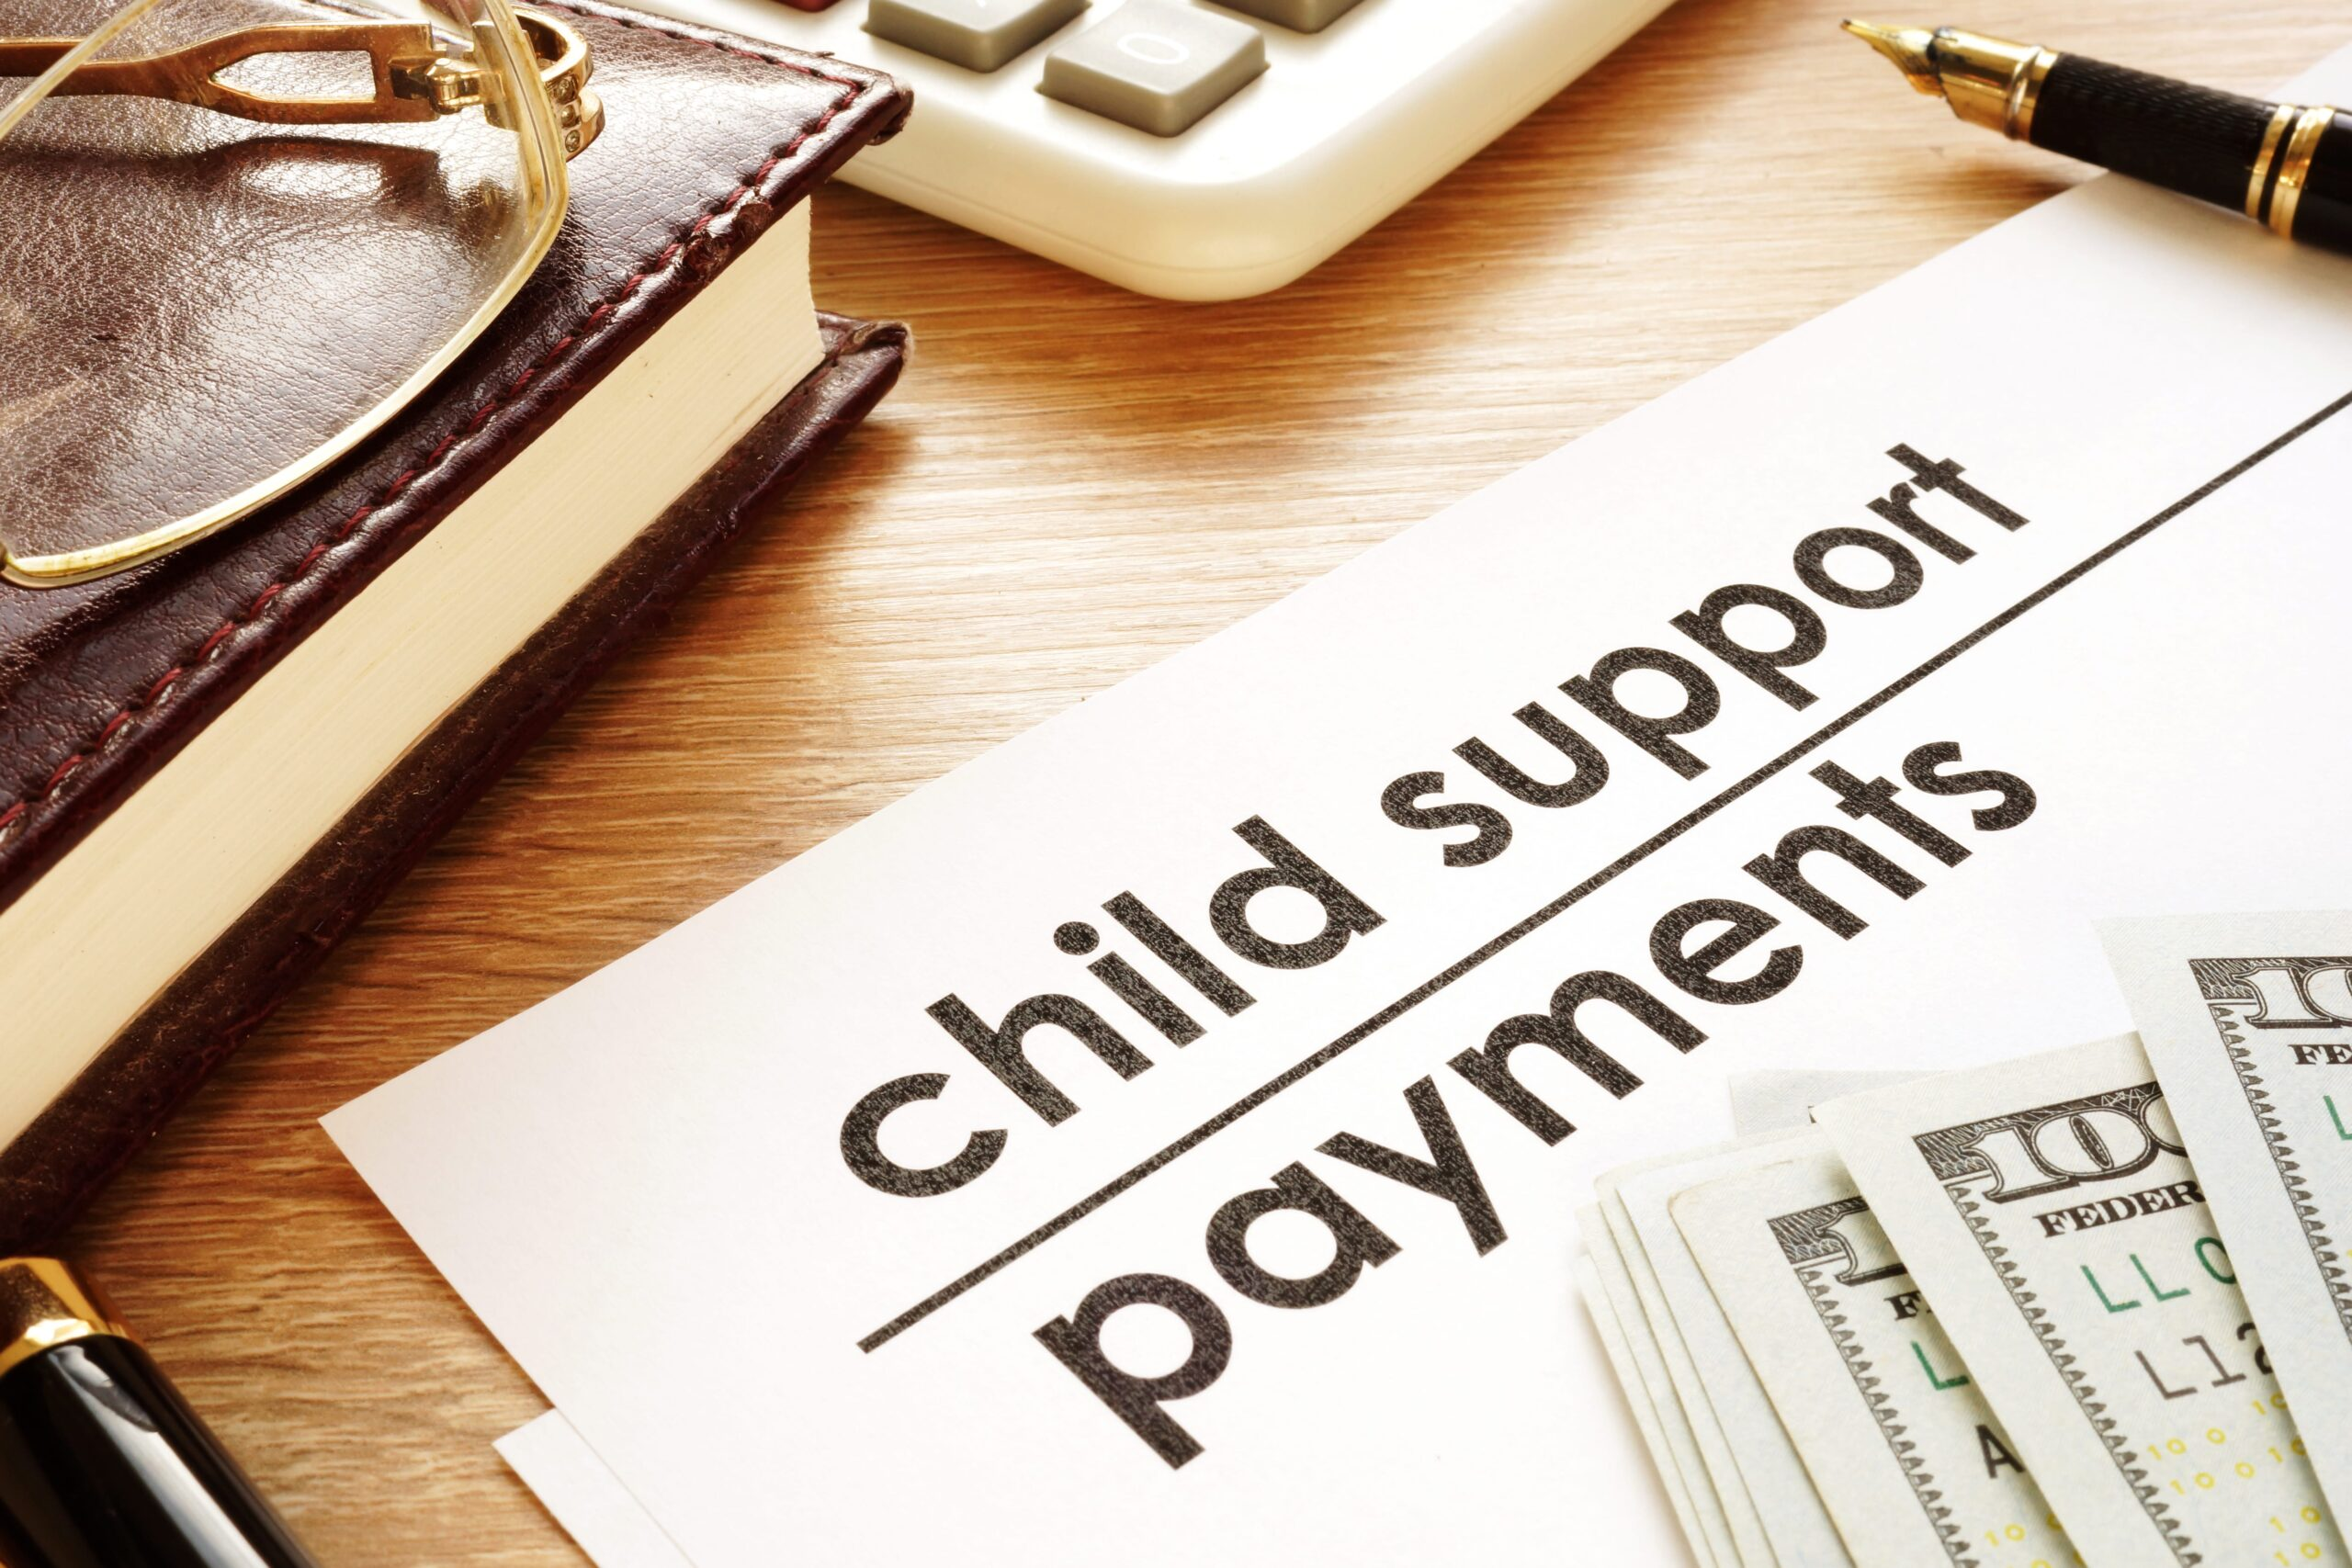 What to Do If You Cannot Afford Your Child Support Payments